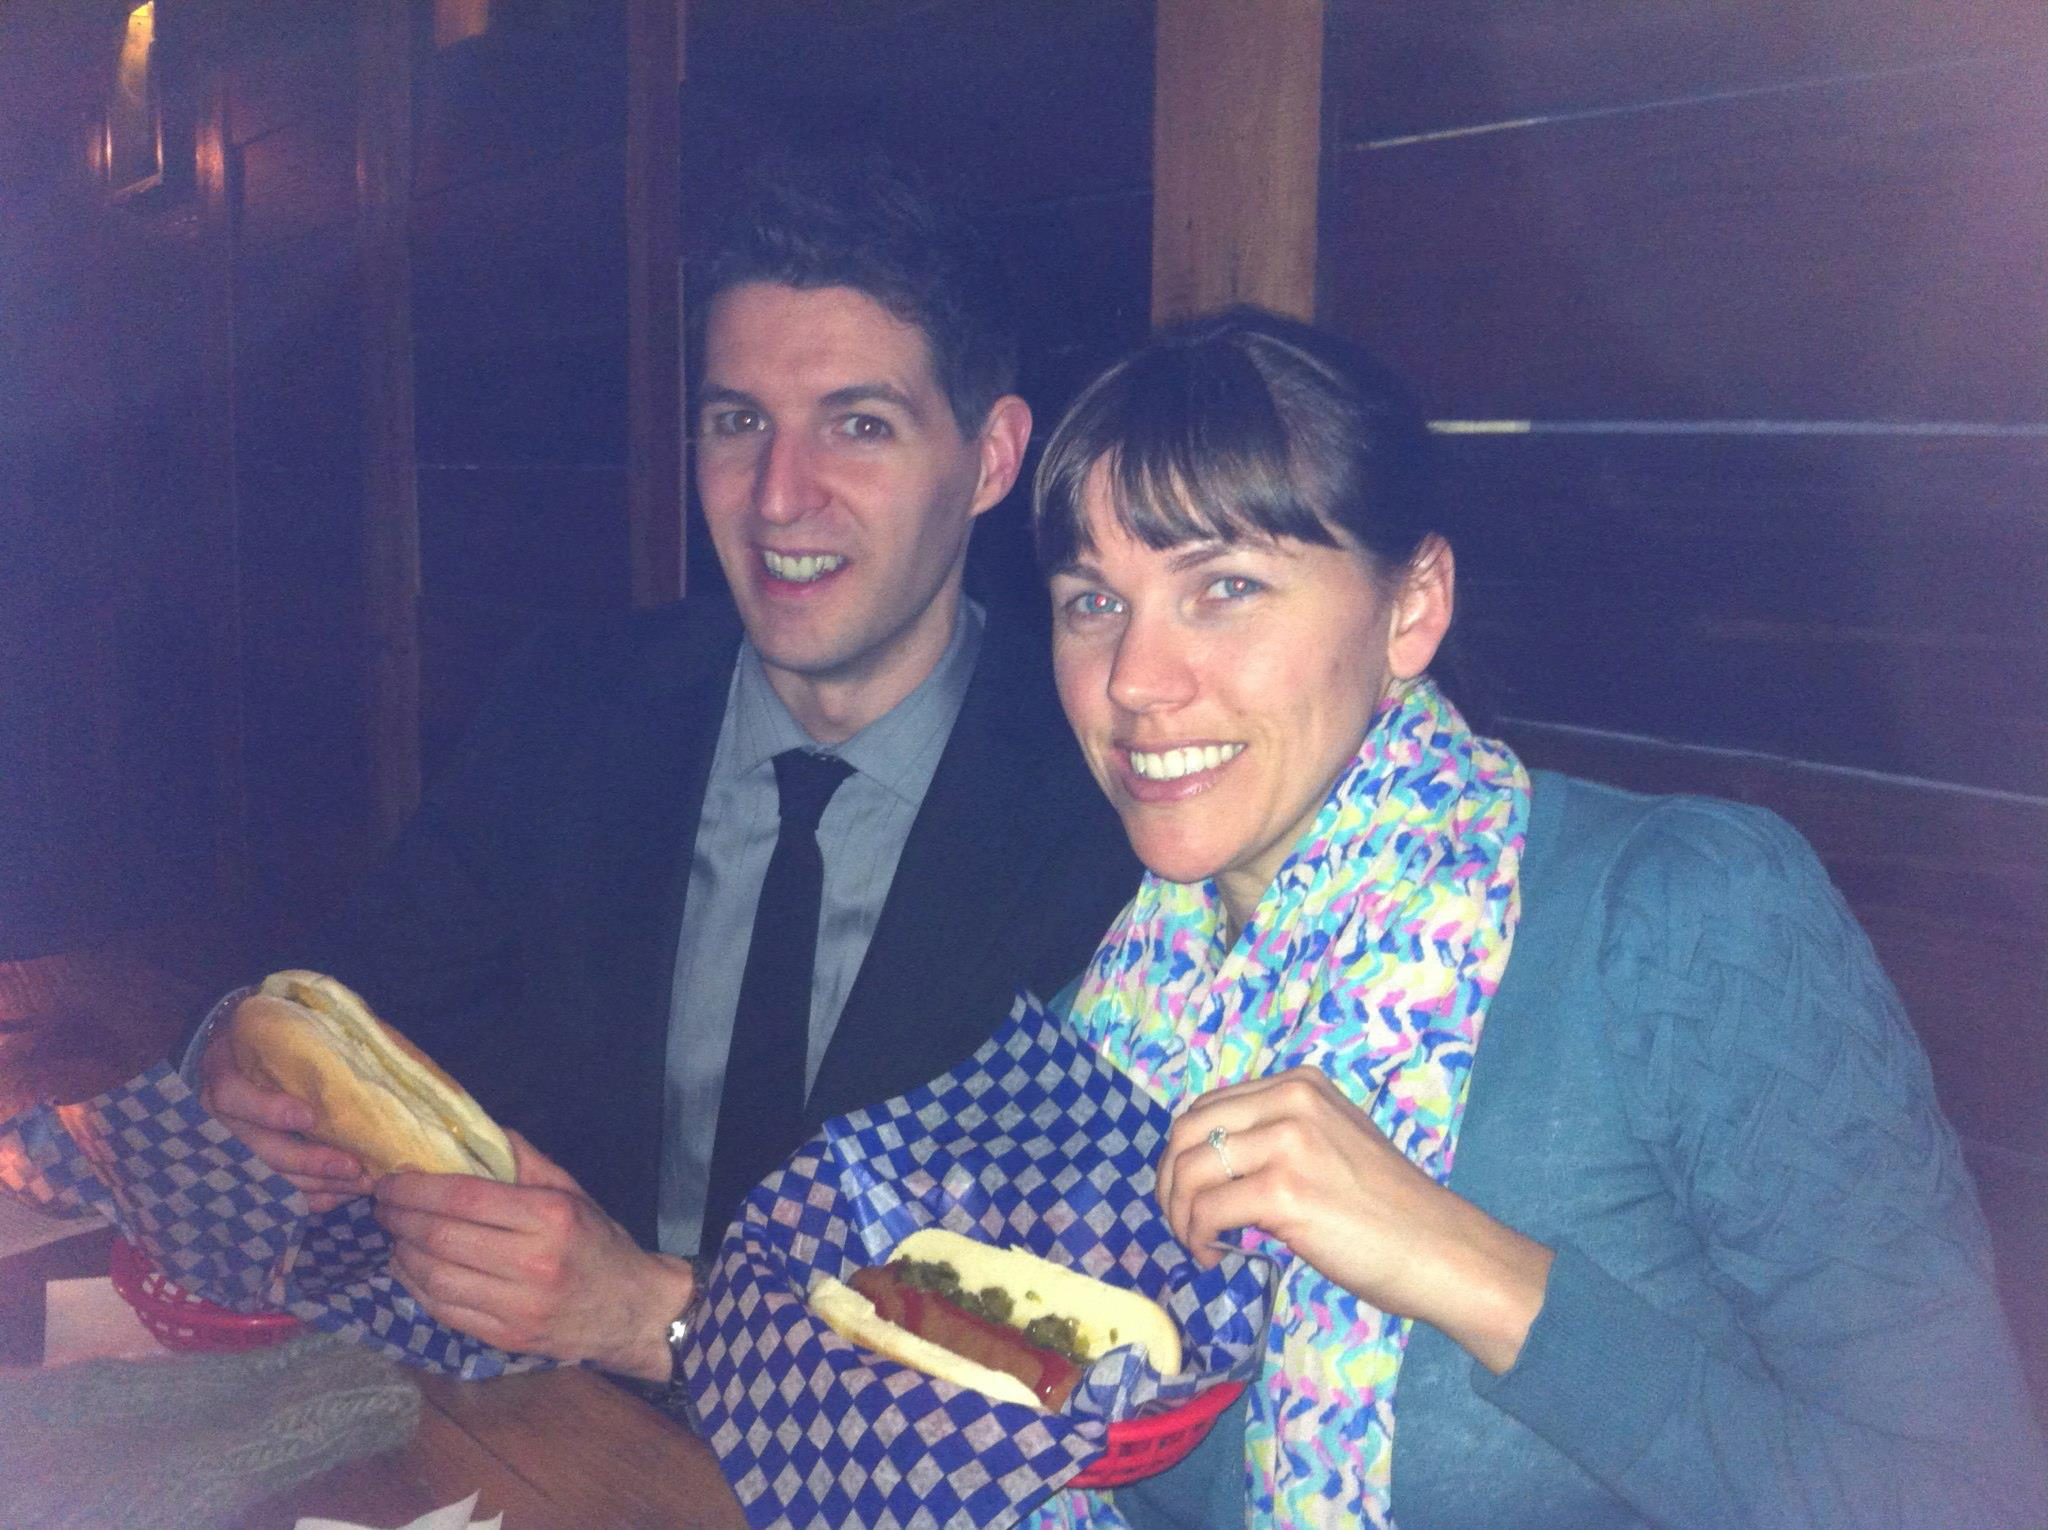 We celebrated with beer and red hots at Portside Pub, a new craft beer pub in Gastown.